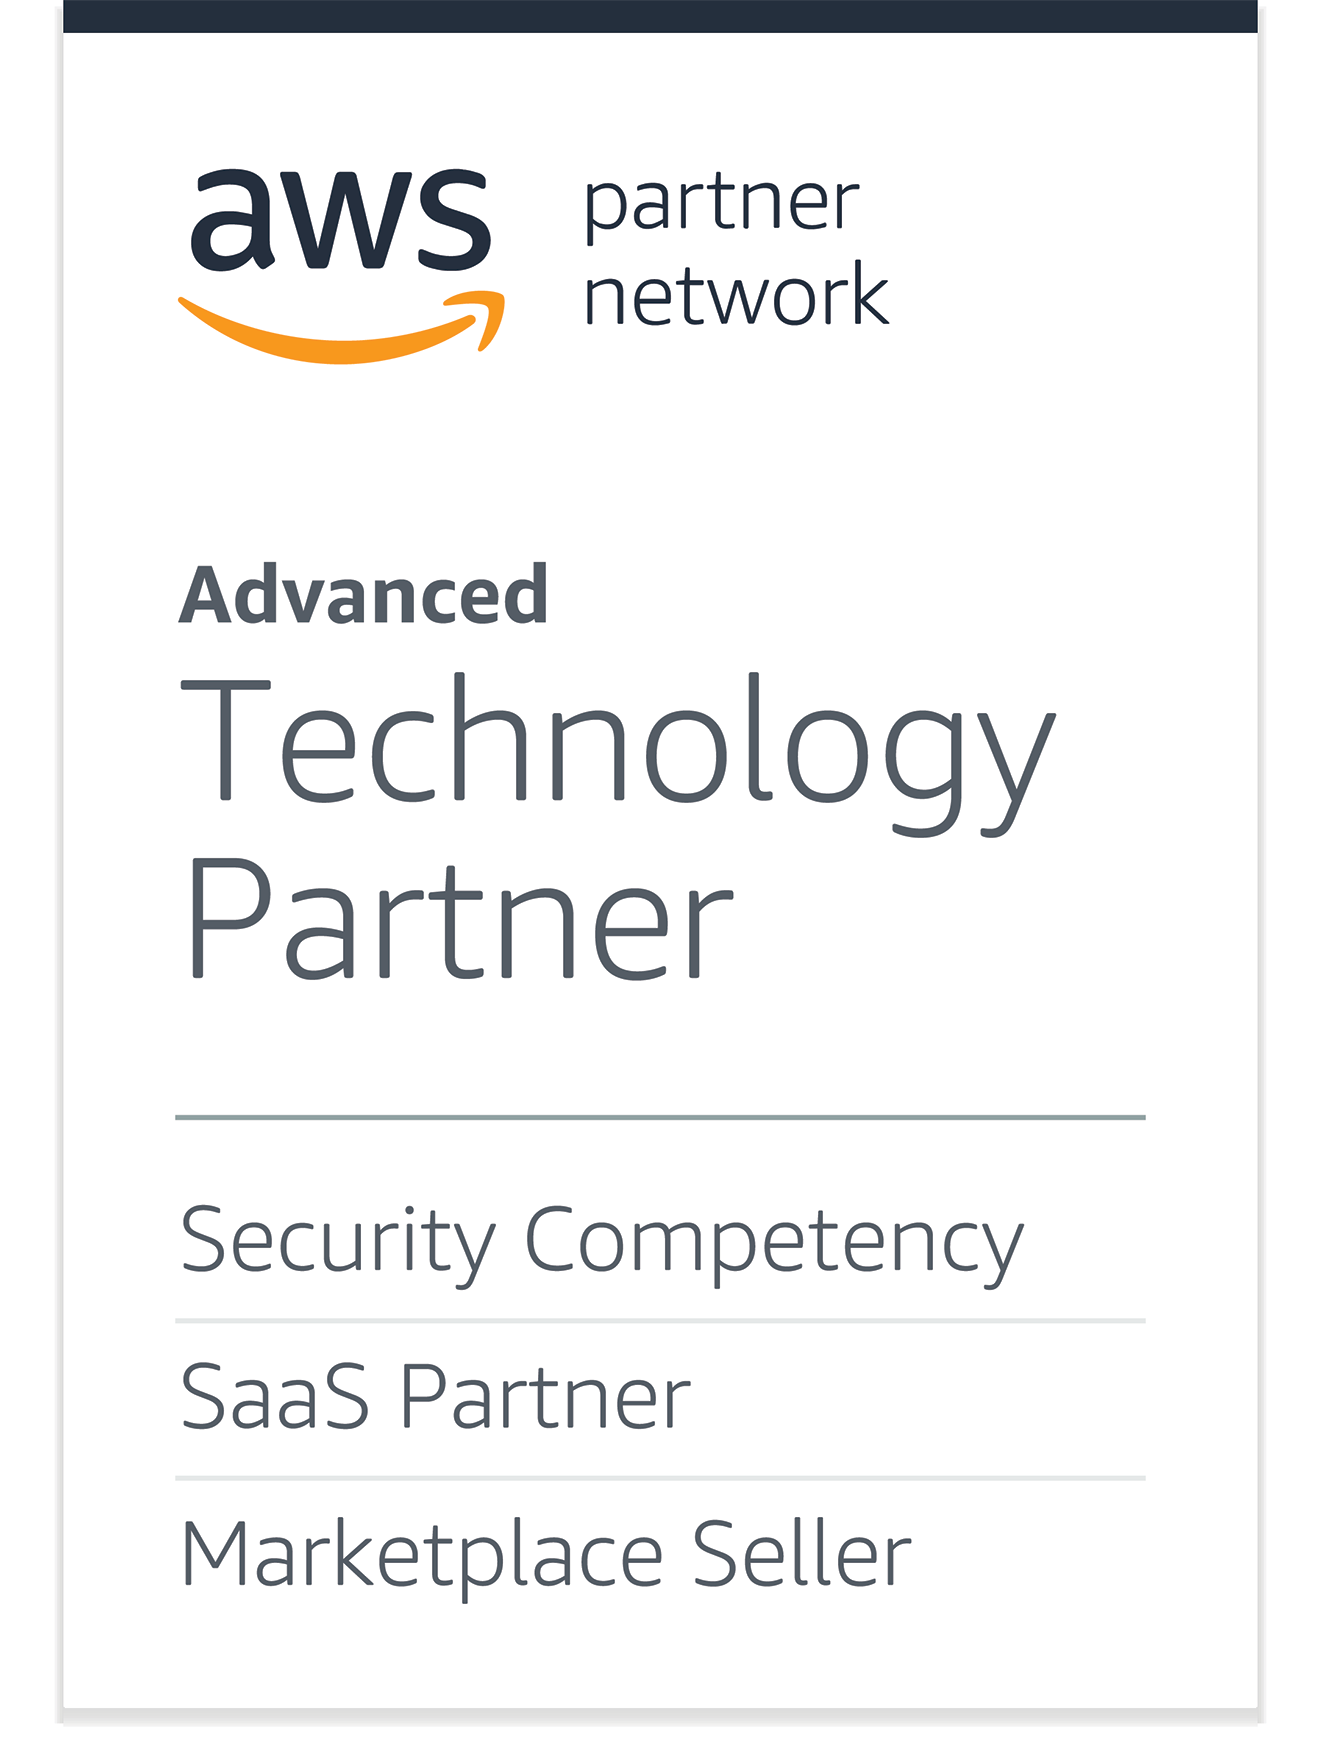 rapid7-insightvm-aws-security-competency-transparent.png